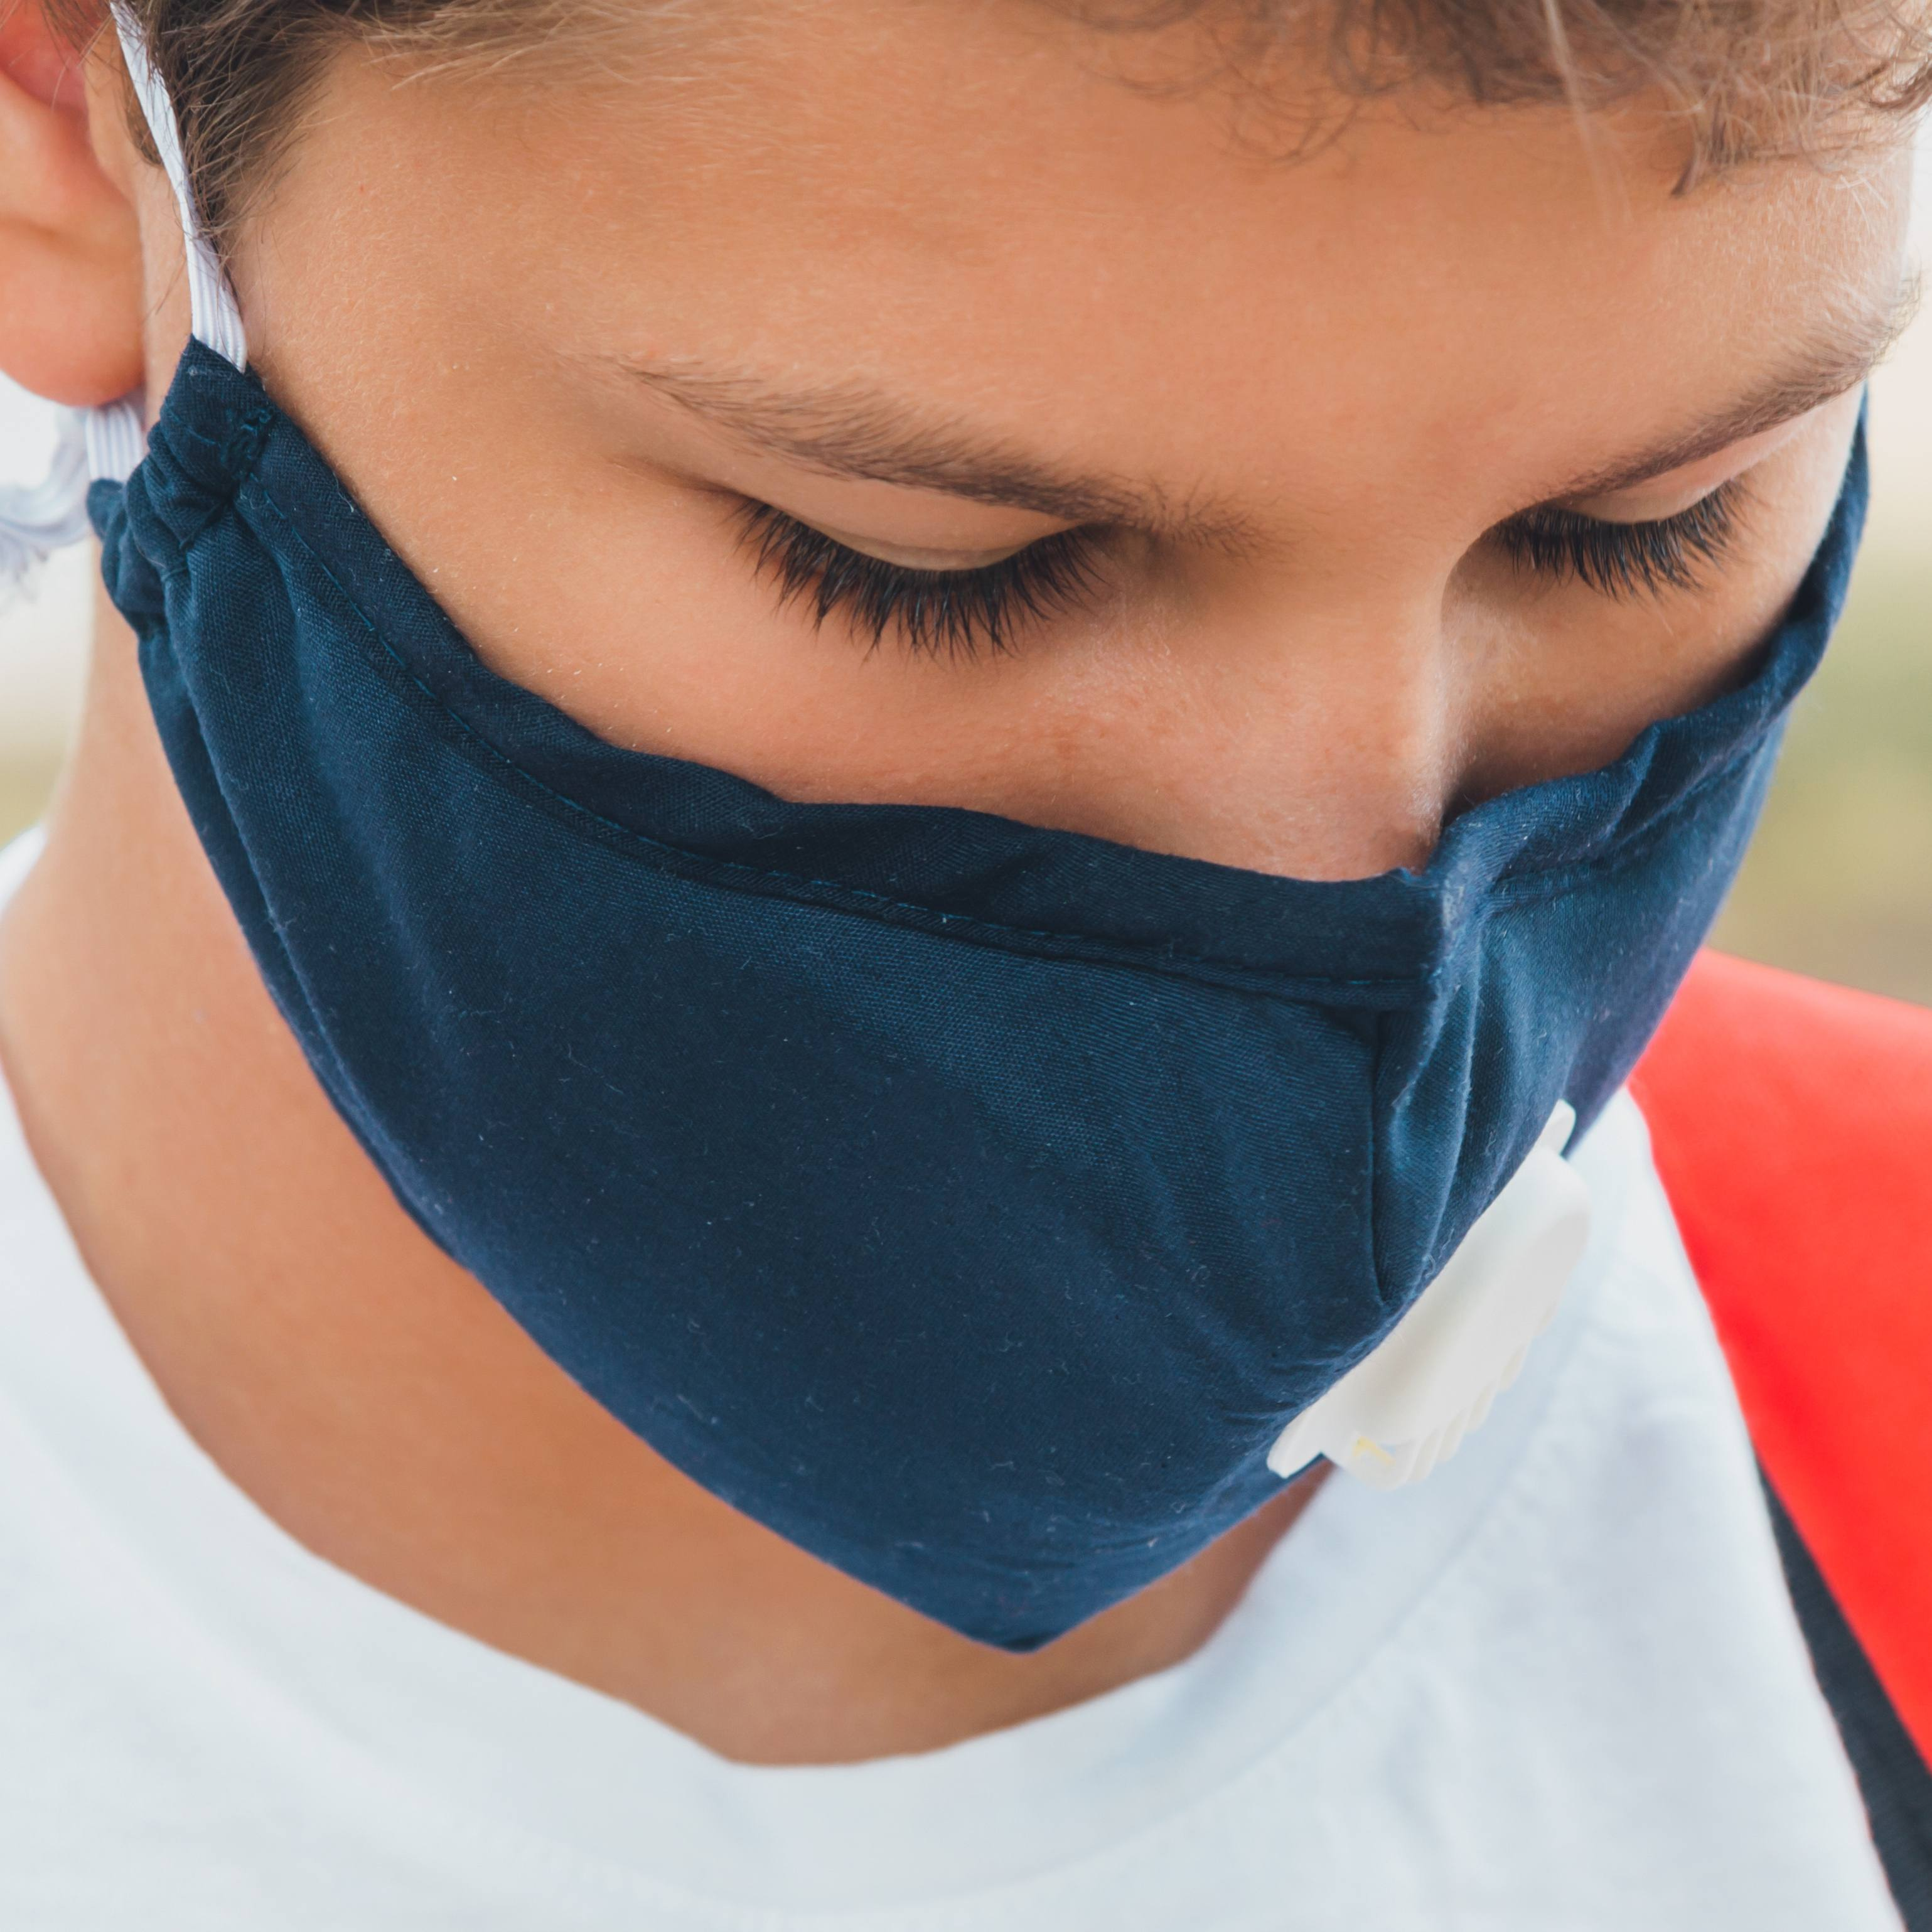 a young white adolescent boy wearing a face mask and carrying a school backpack